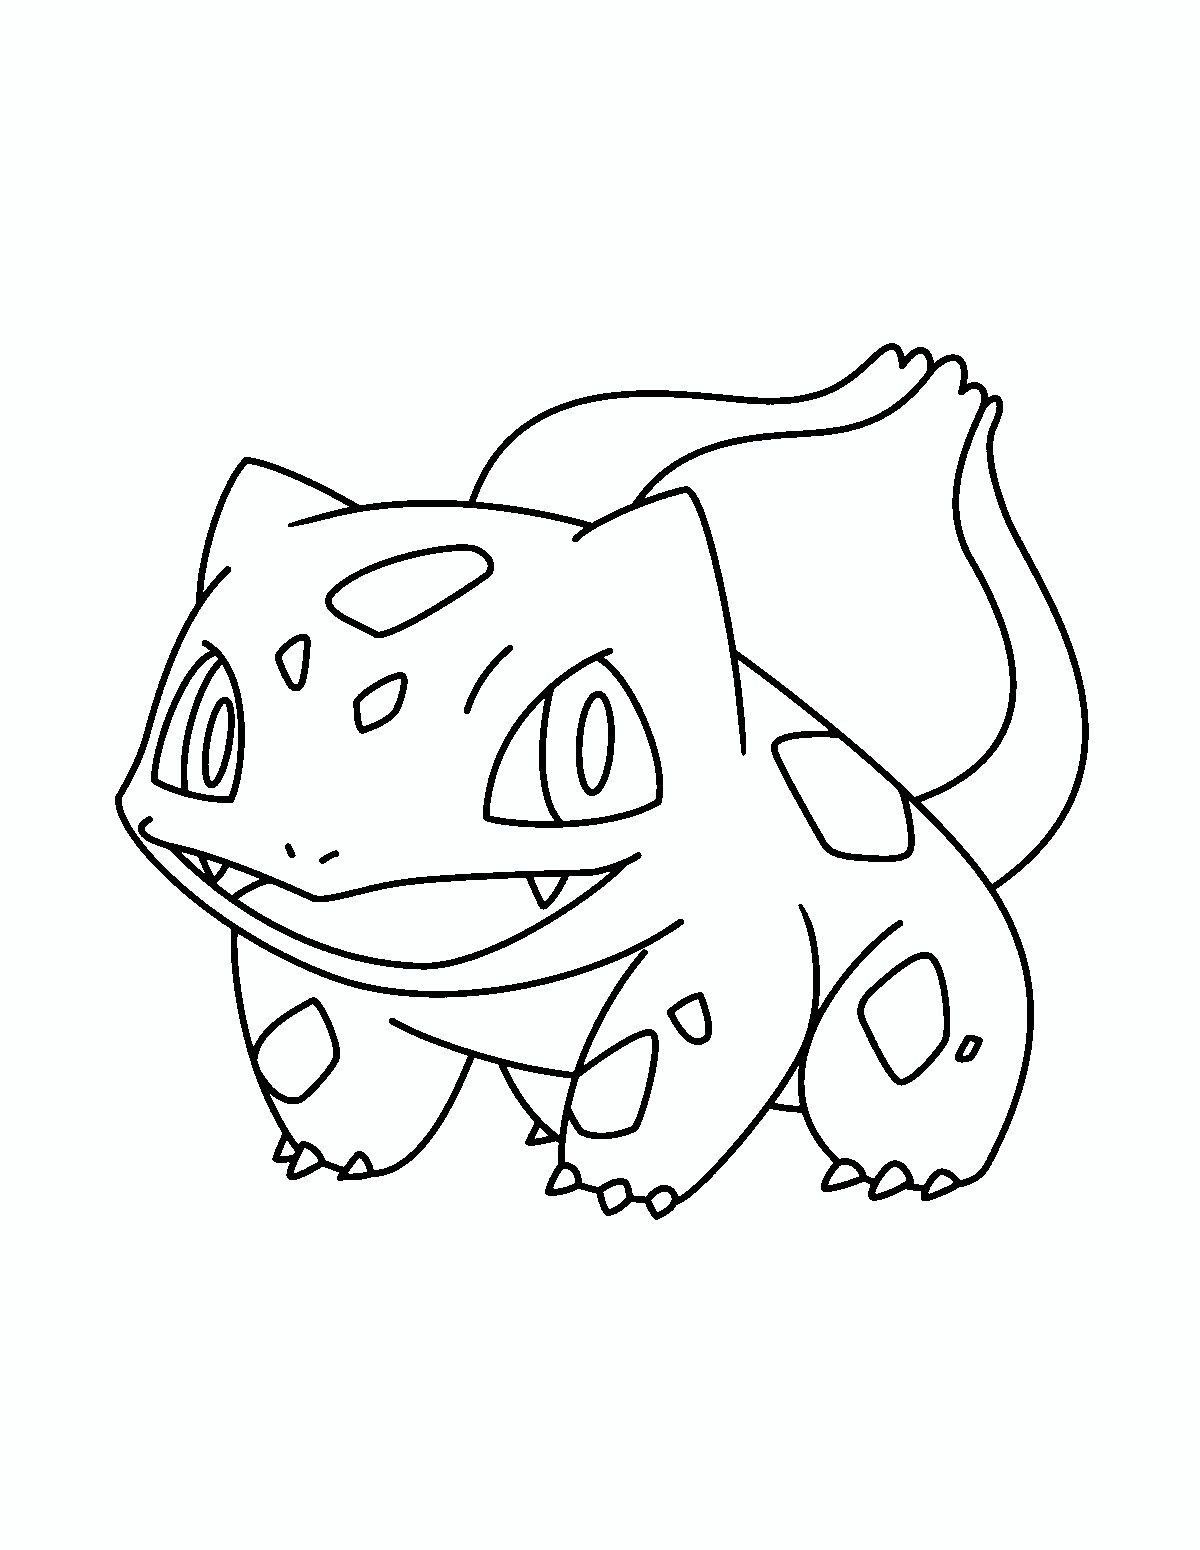 Pin By Isabella Deiana On Pokemon Pokemon Coloring Sheets Pikachu Coloring Page Pokemon Coloring Pages